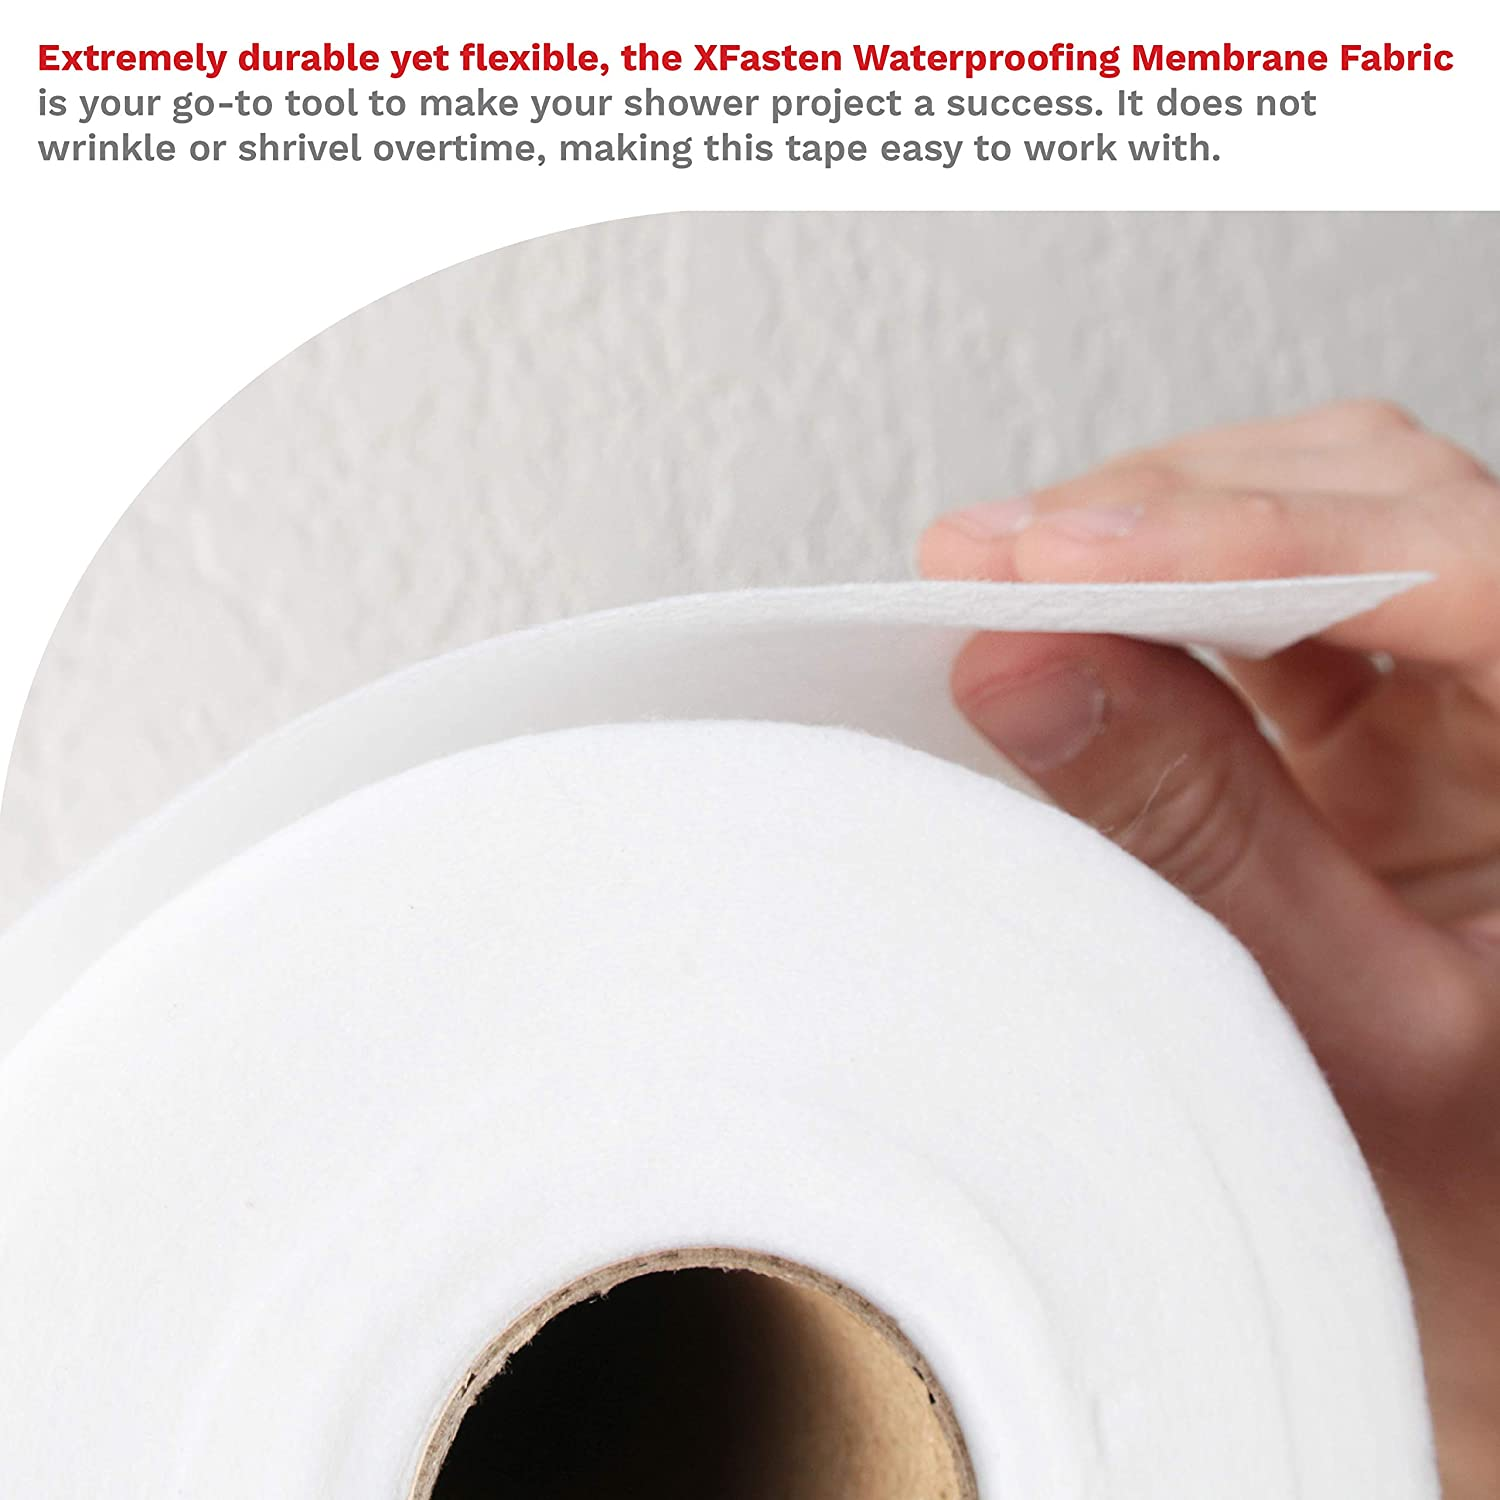 6-Inch x 75-Foot Water Barrier Mesh Tape for Shower Walls and Tiles XFasten Fiberglass Waterproofing Anti-Fracture Membrane Fabric Tape